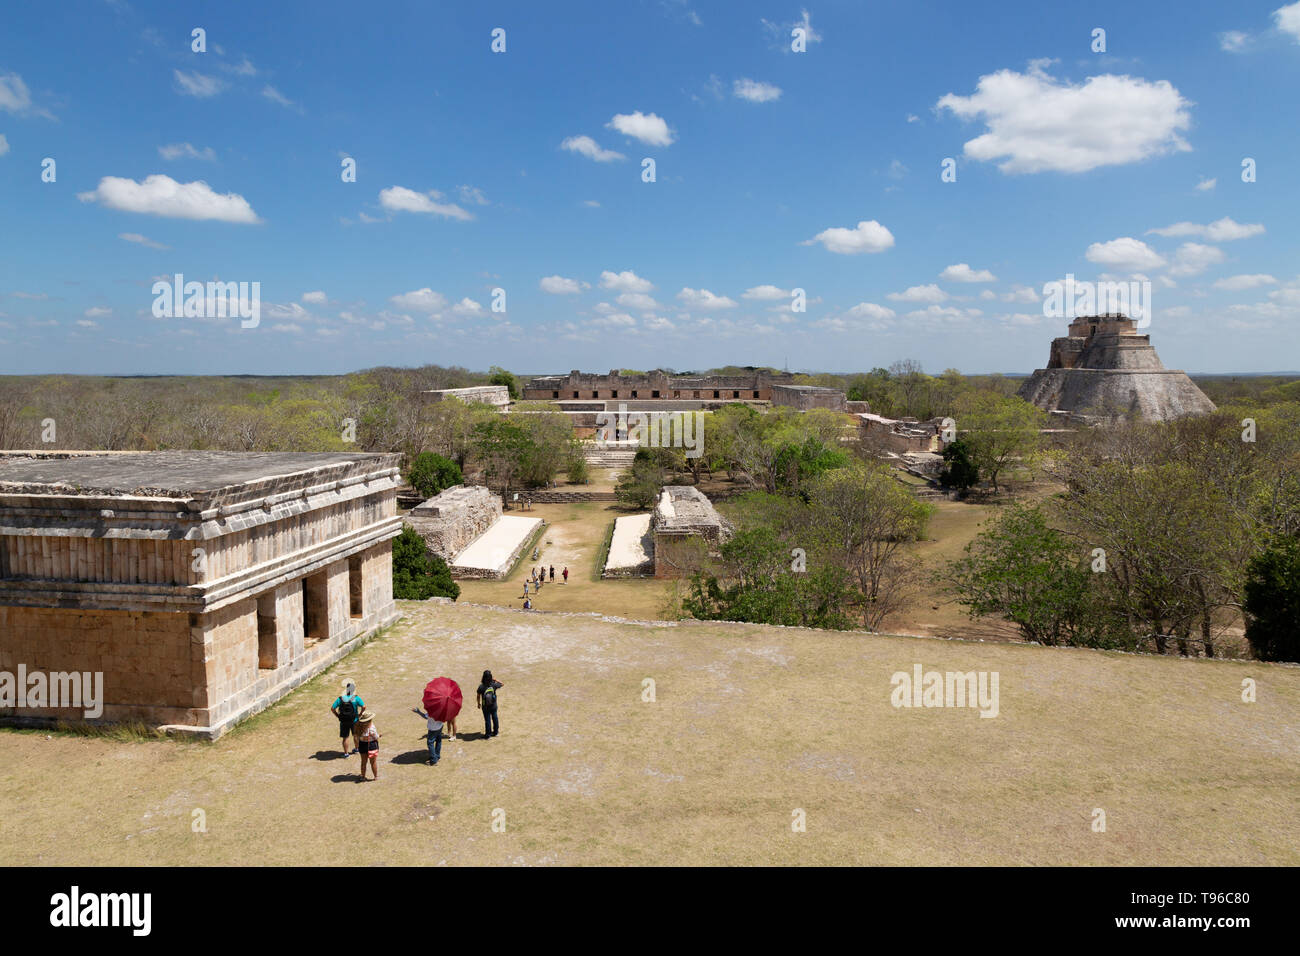 uxmal-mexico-view-of-the-mayan-ruins-looking-past-the-house-of-the-turtles-towards-the-nunnery-quadrangle-and-pyramid-of-the-magician-latin-america-T96C80.jpg